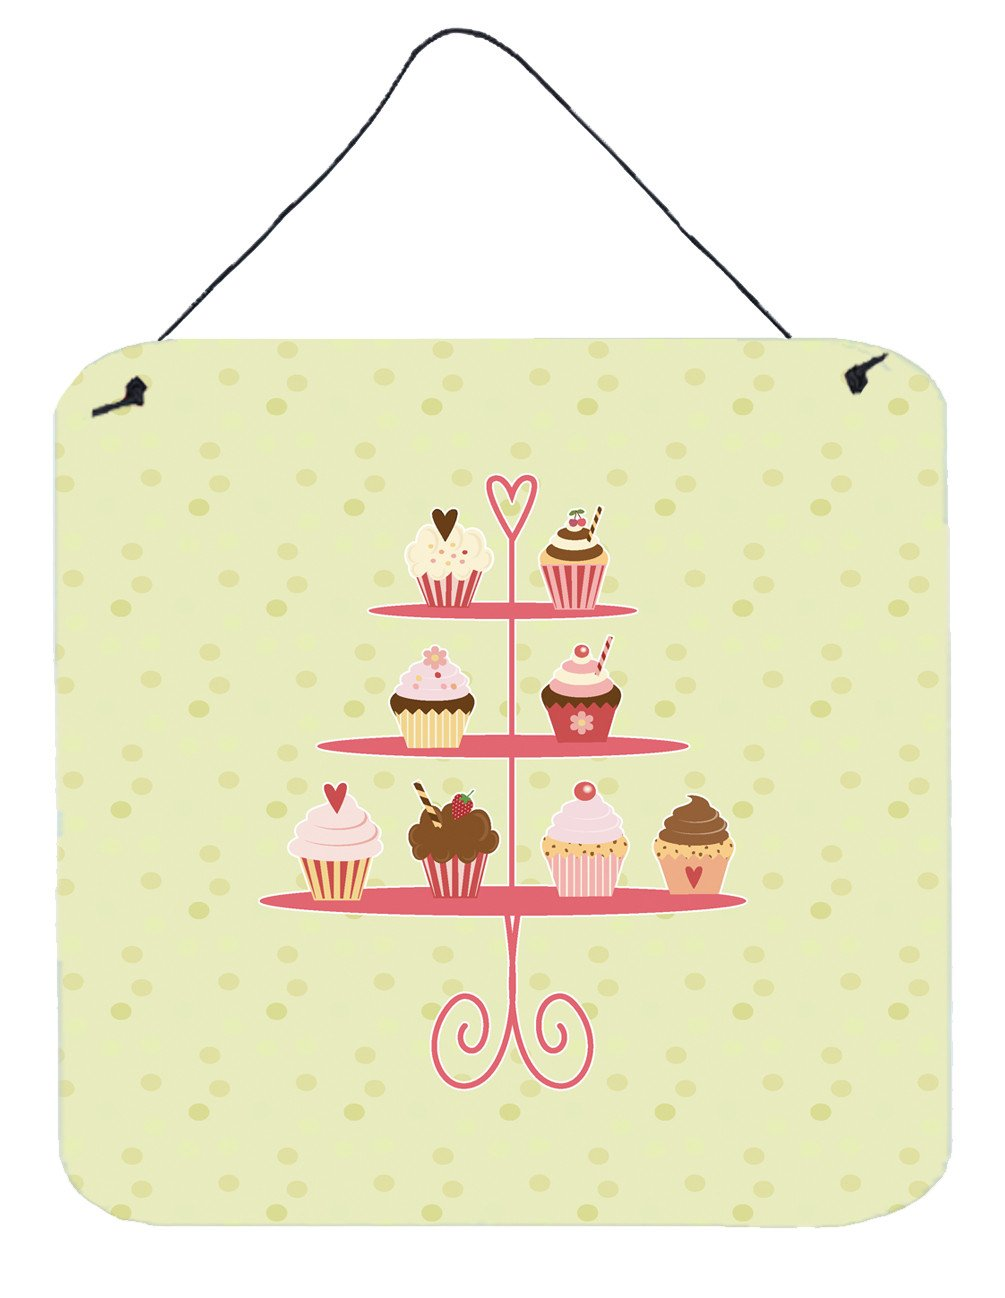 Cupcakes 3 Tier Stand on Green Wall or Door Hanging Prints BB7304DS66 by Caroline's Treasures